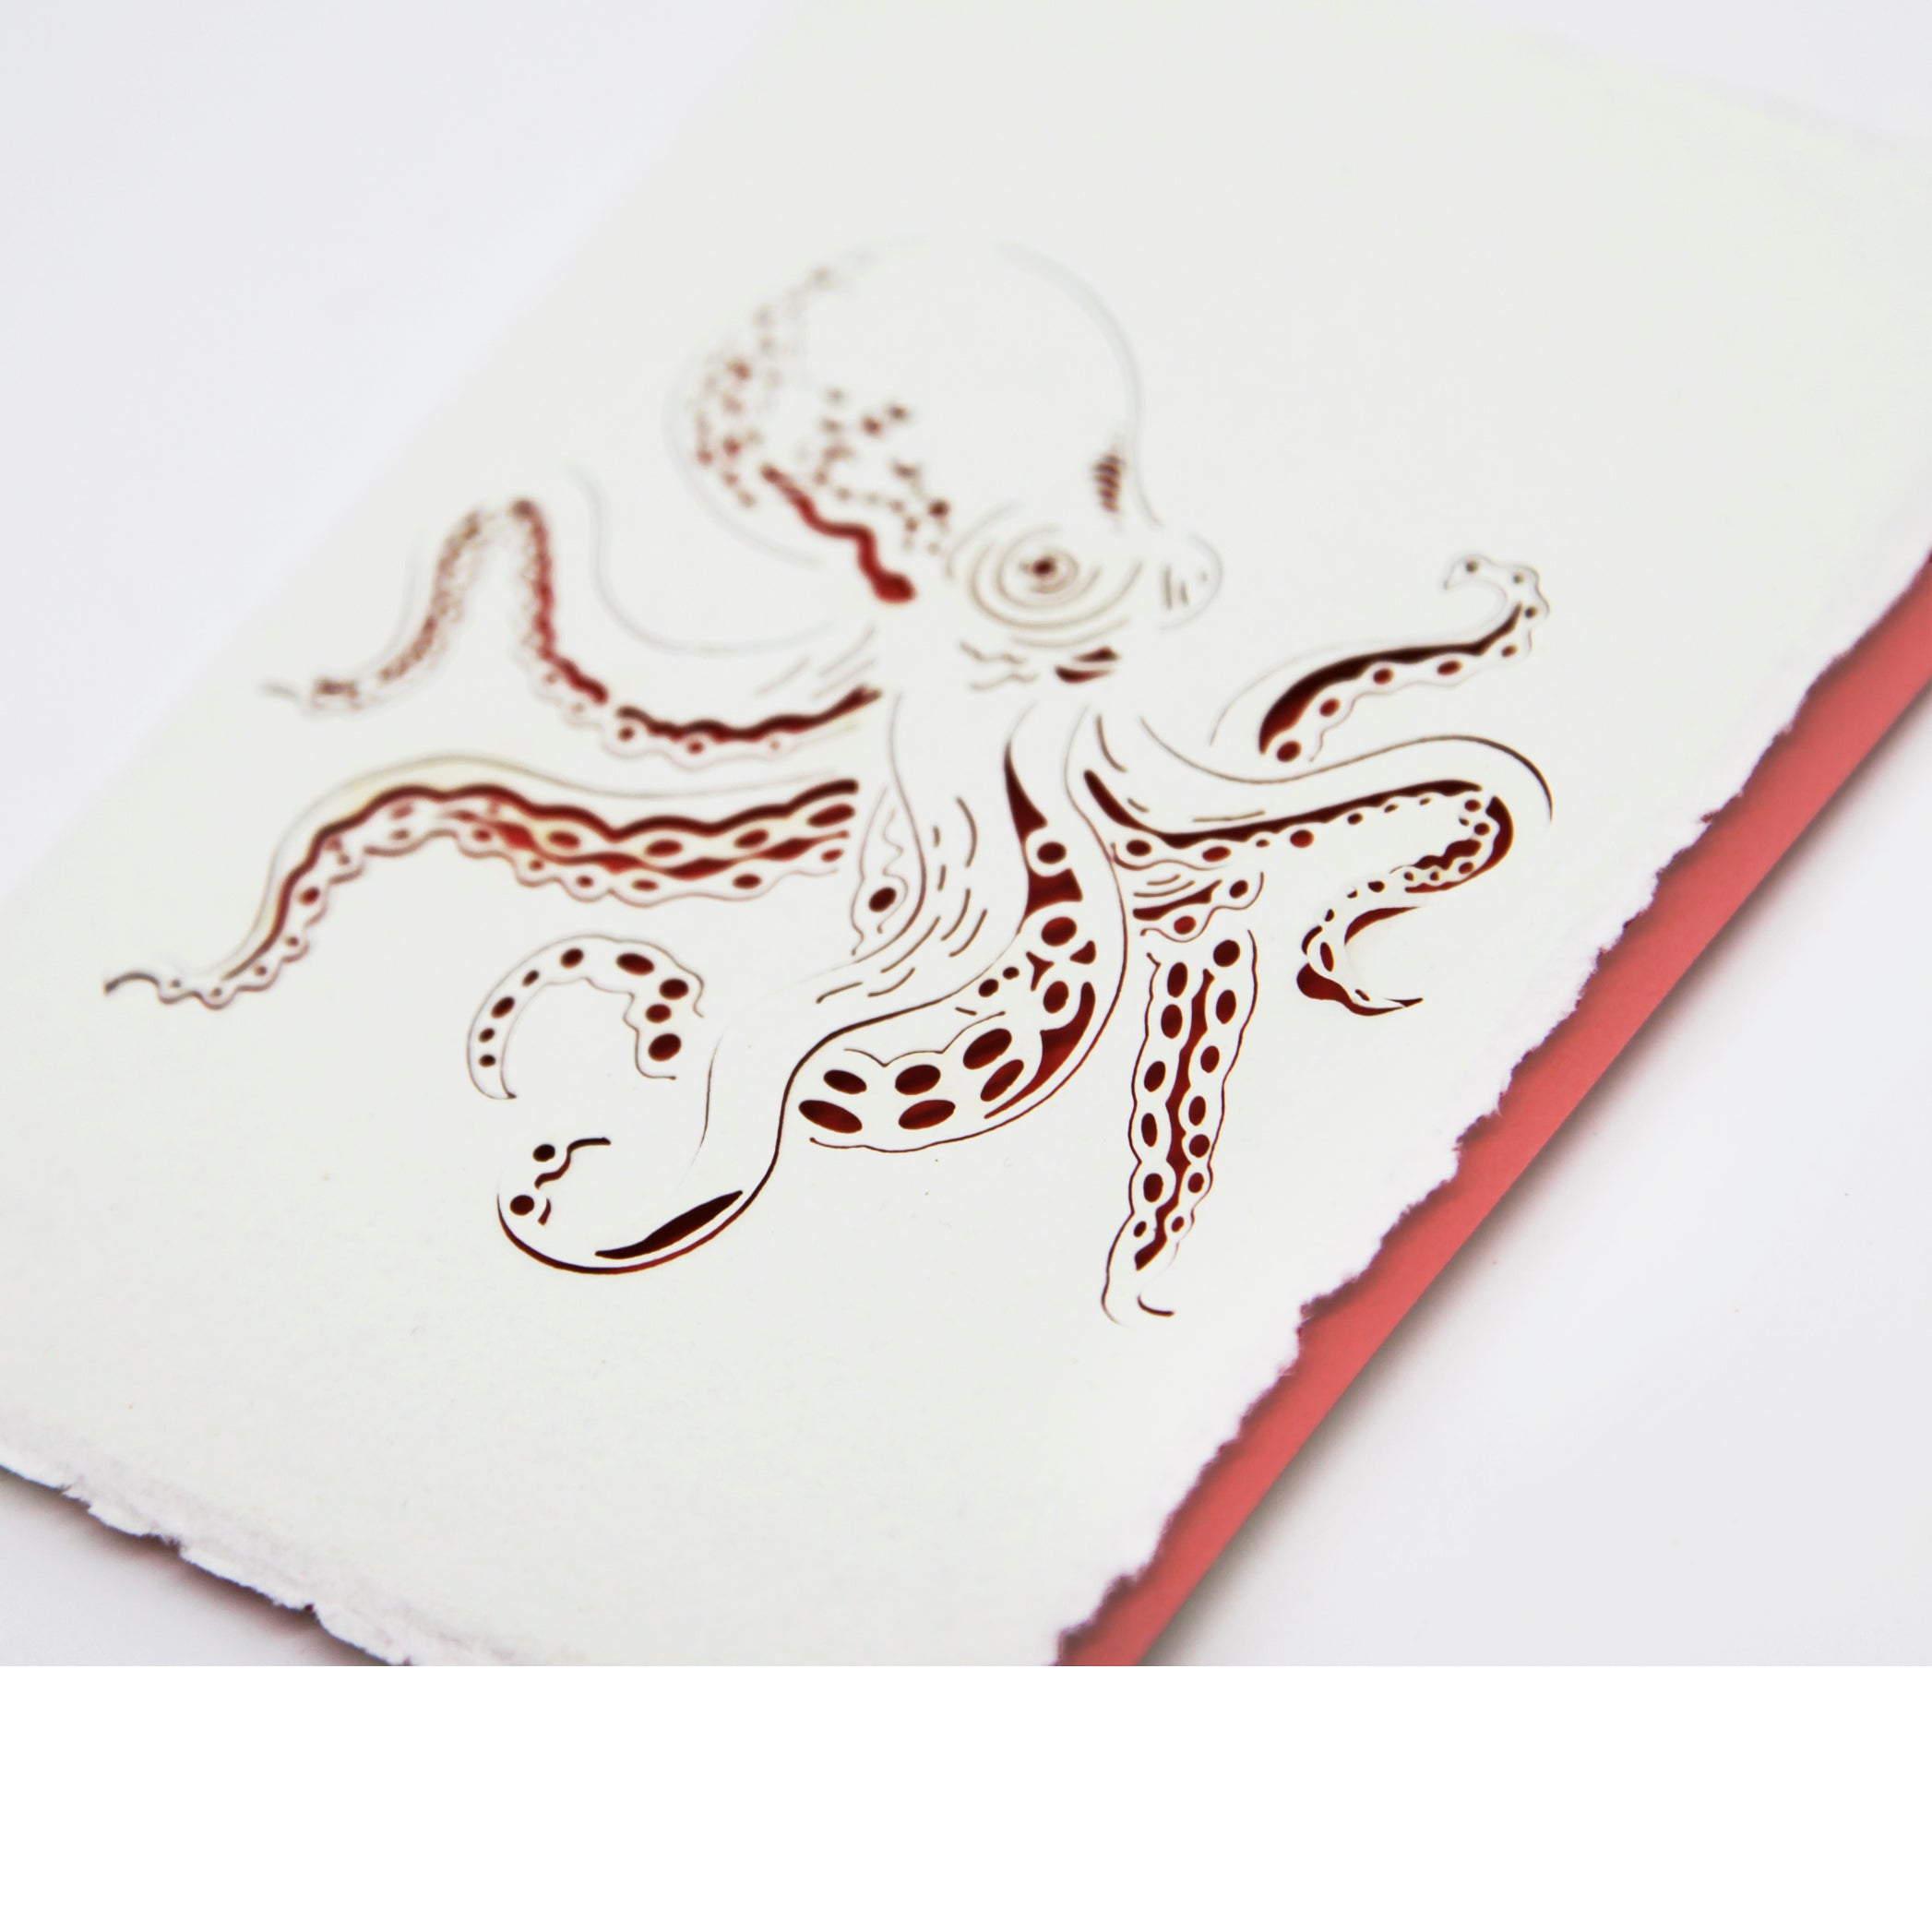 Handmade Paper Greeting Card with Octopus